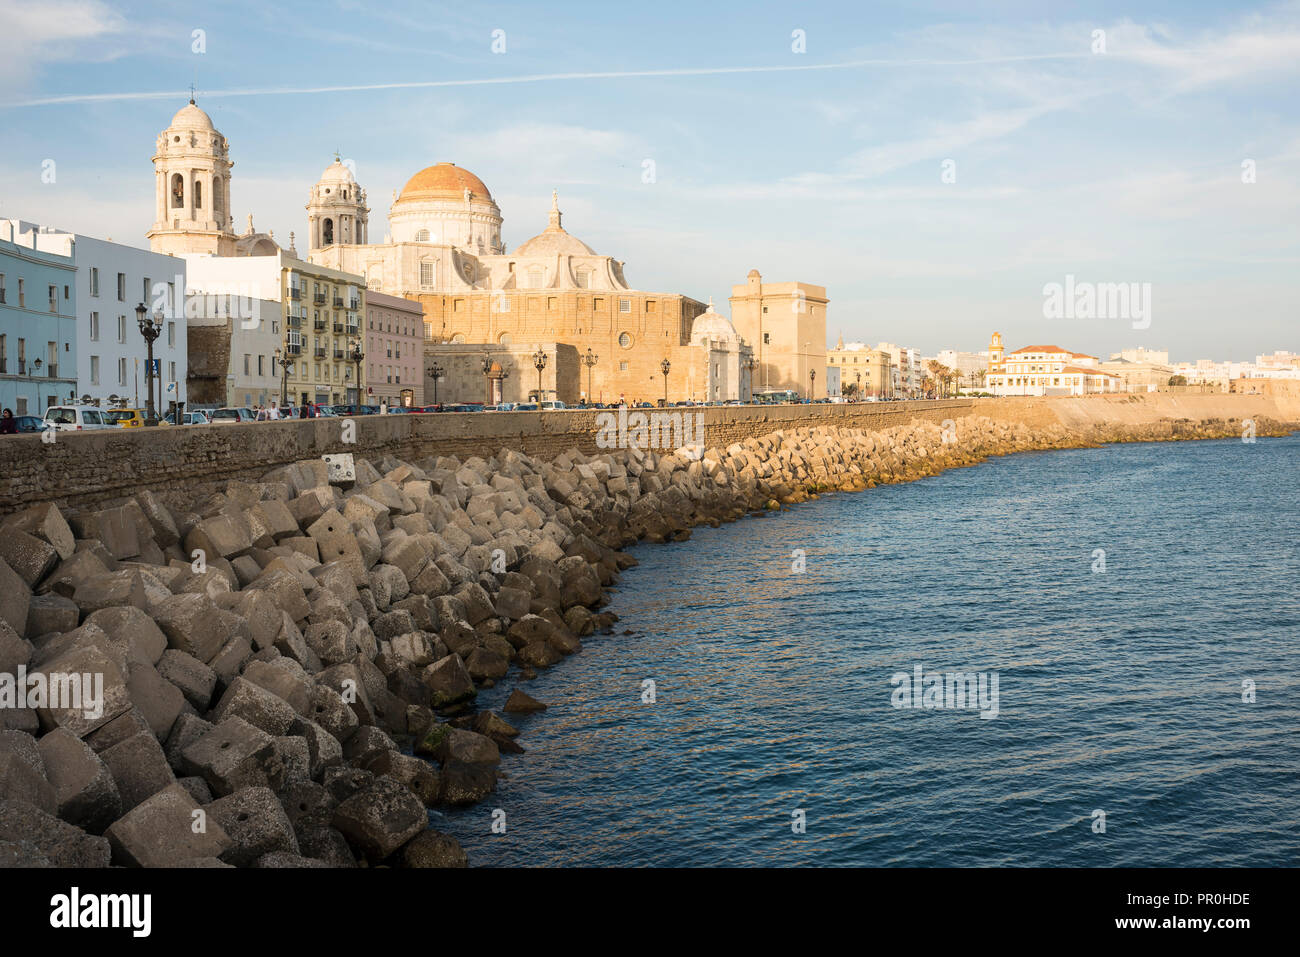 Cadiz, Andalucia, Spain, Europe - Stock Image